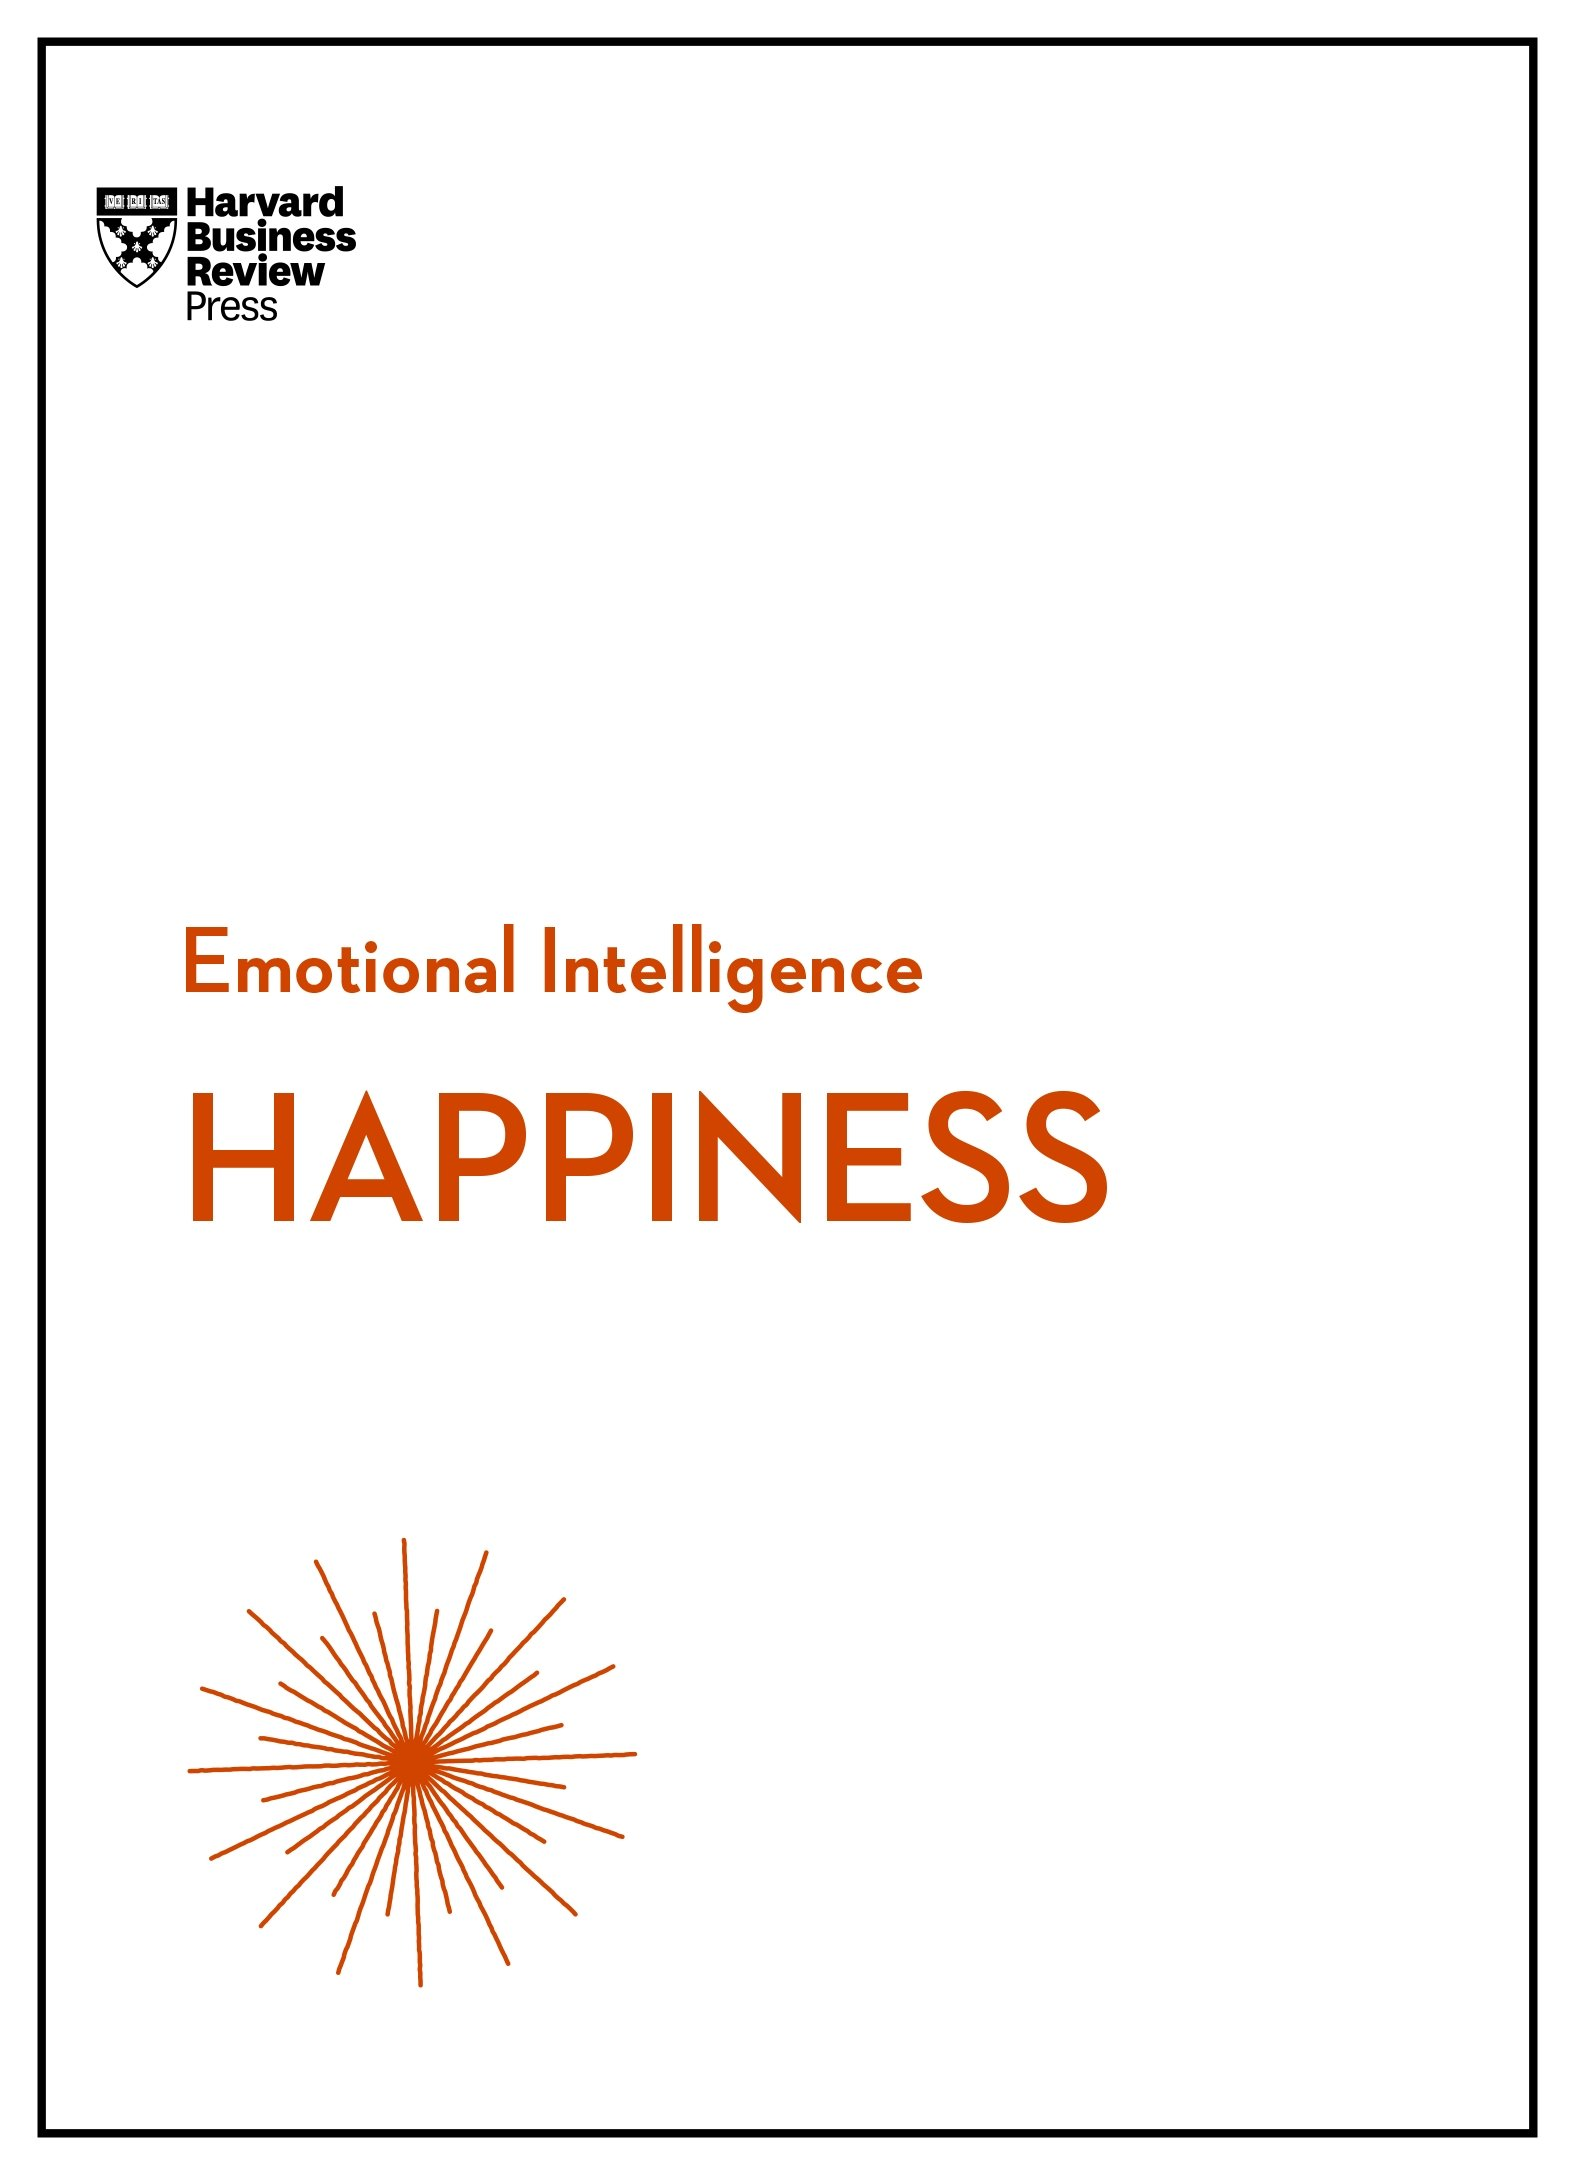 Download Happiness (HBR Emotional Intelligence Series) PDF